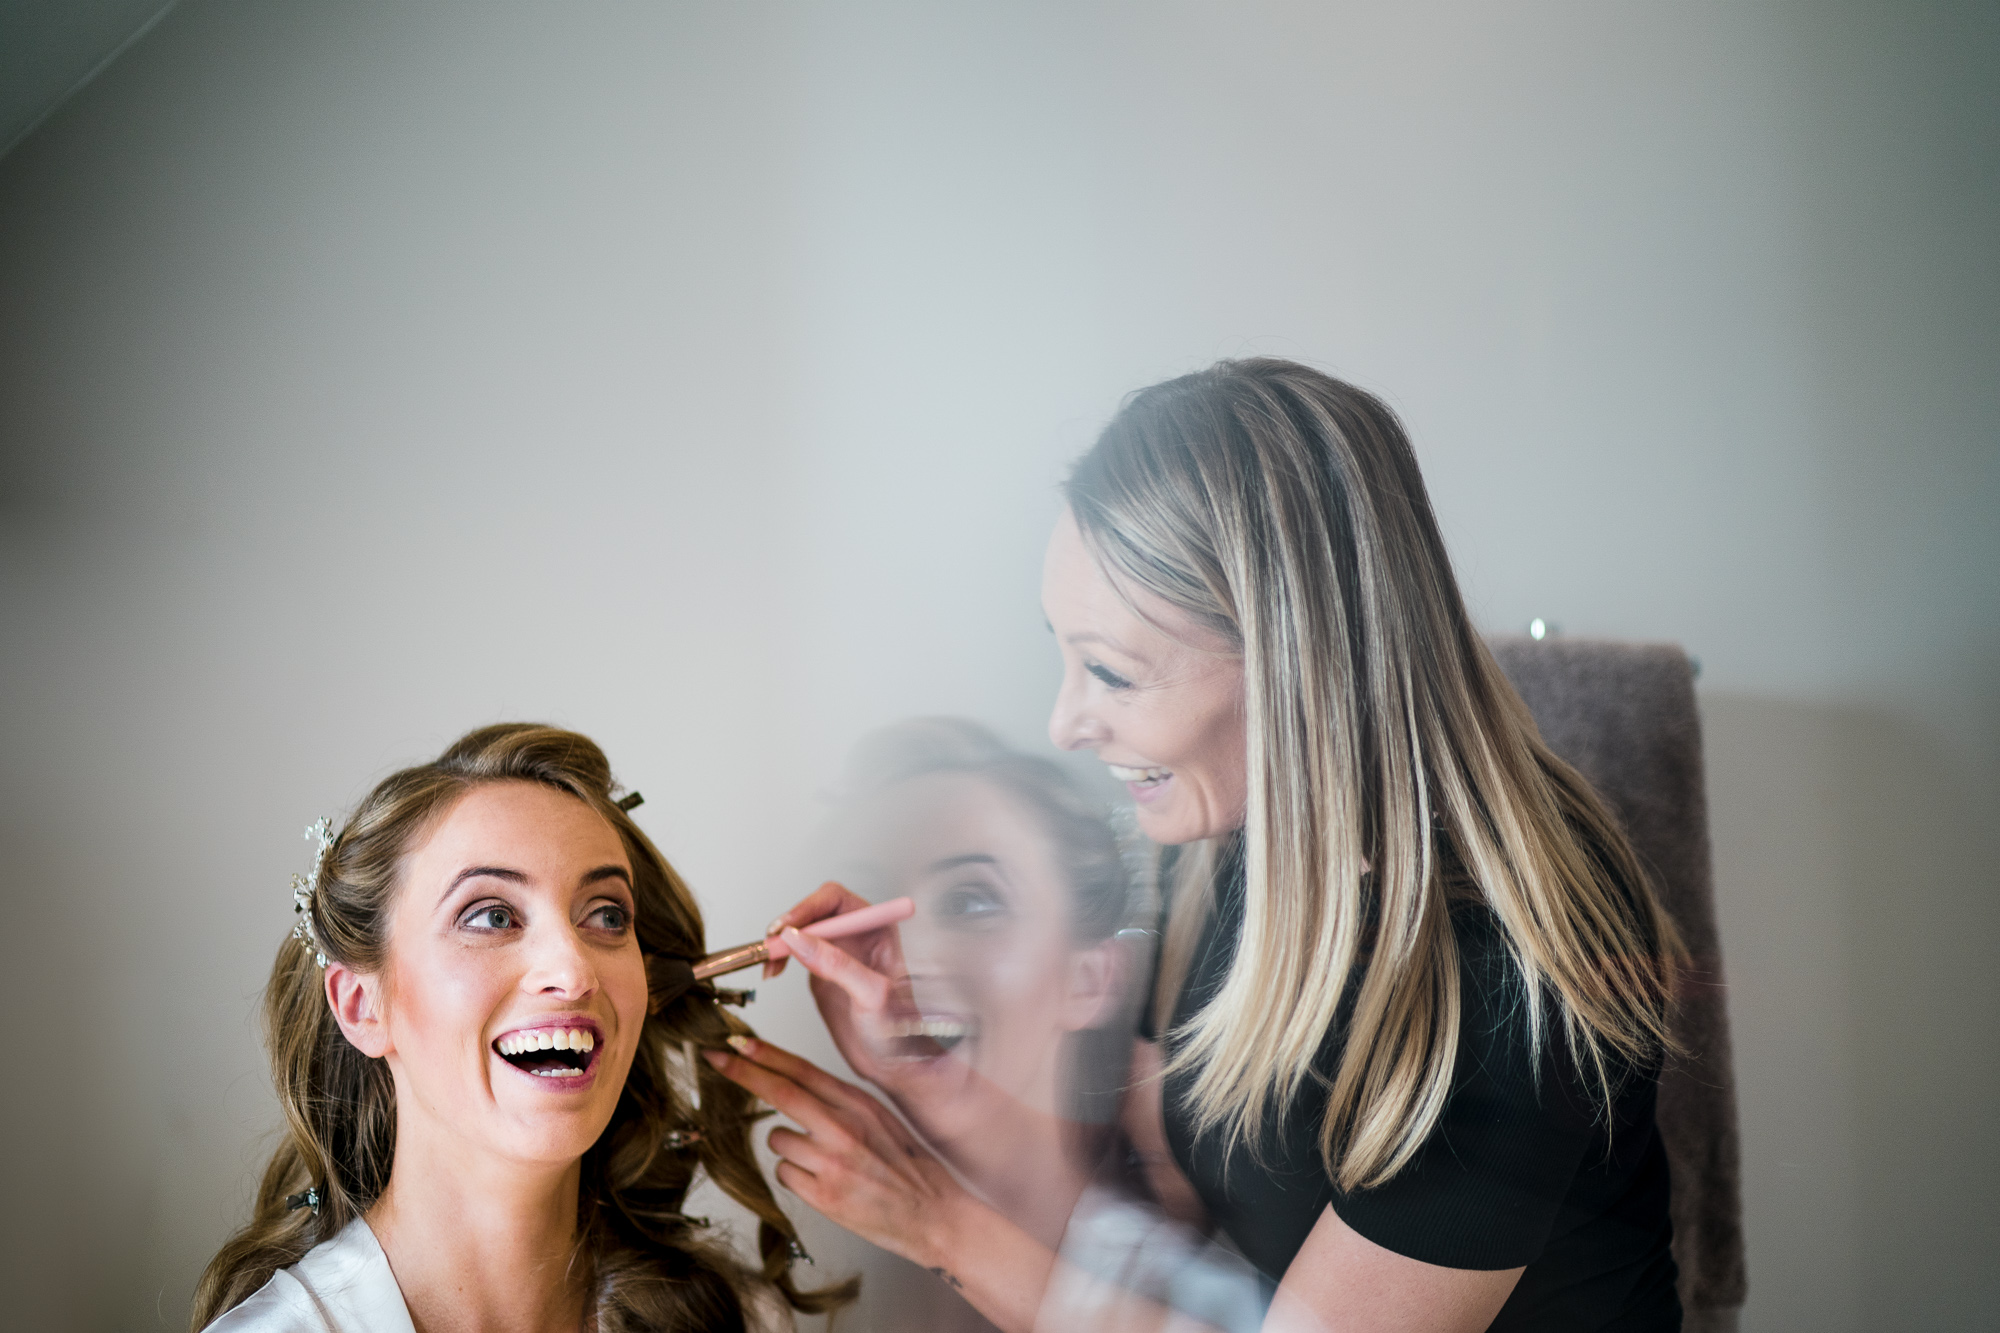 Tower Hill BArn Wedding Photographer based in north west england (5 of 35).jpg